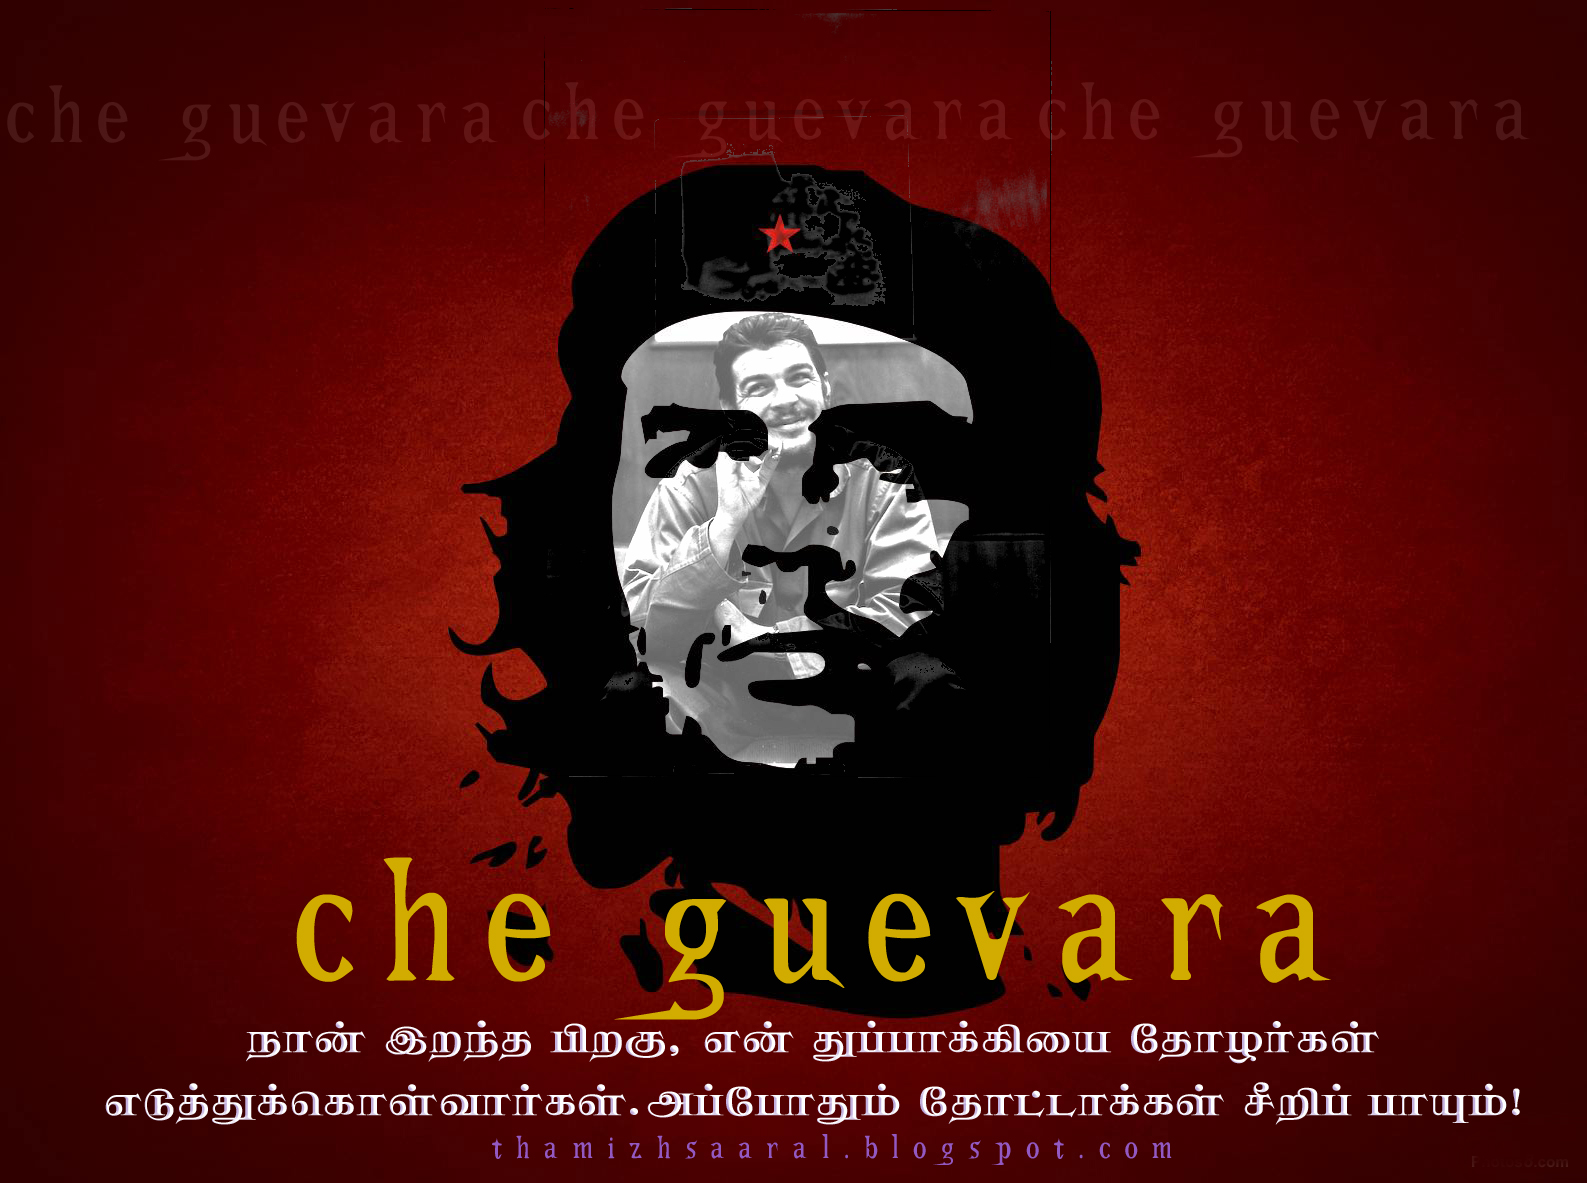 Che Guevara Quotes In Spanish 8 Quotes Links